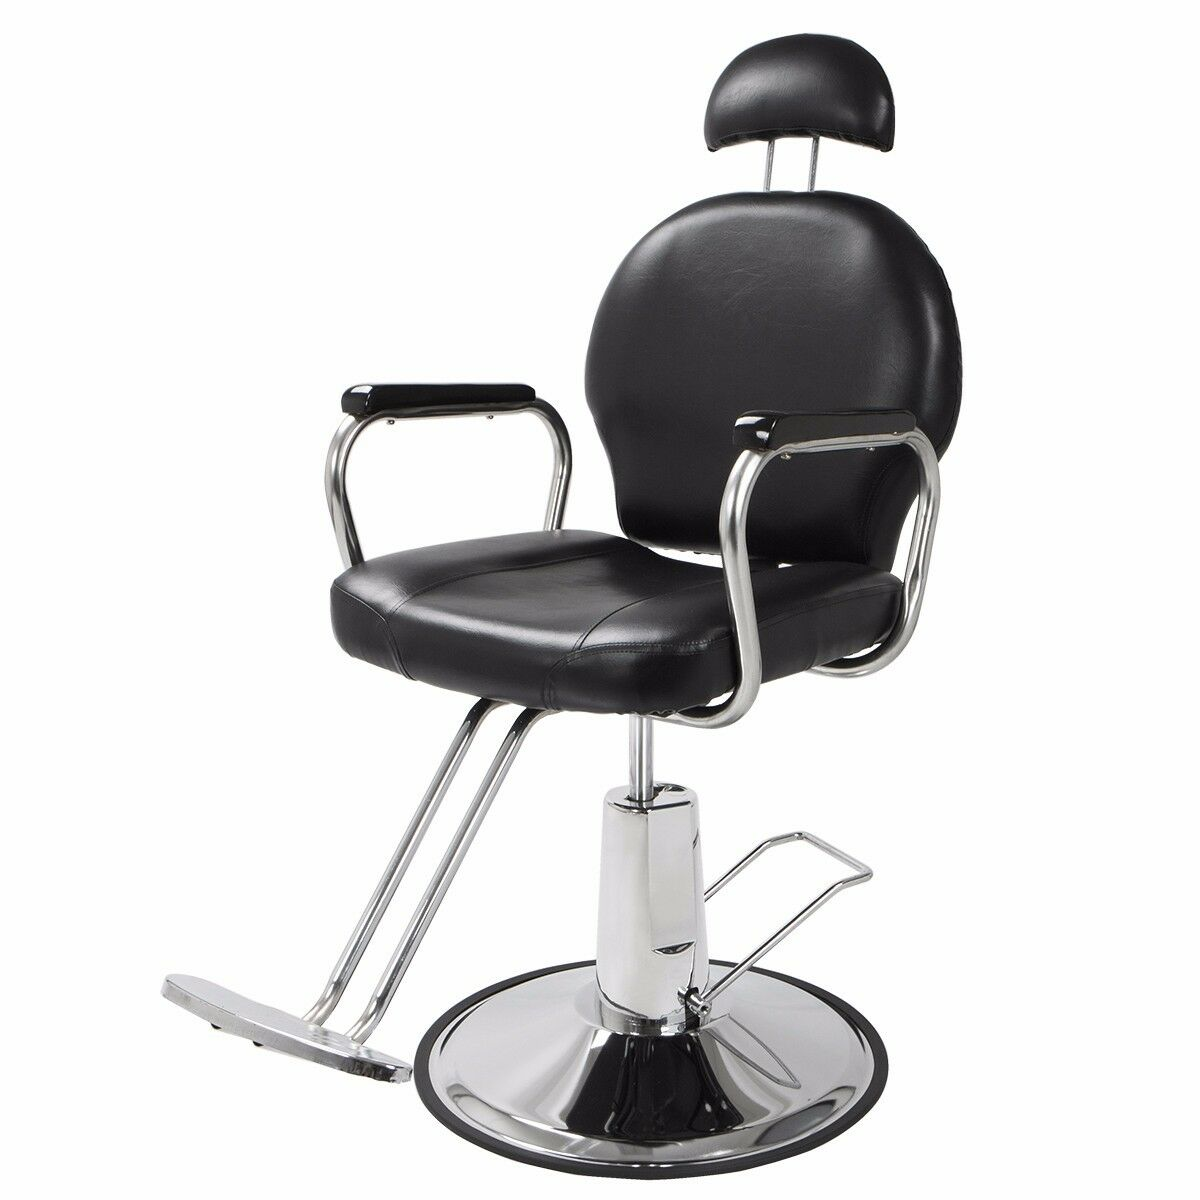 Hydraulic Chairs New Reclining Hydraulic Barber Chair Salon Styling Beauty